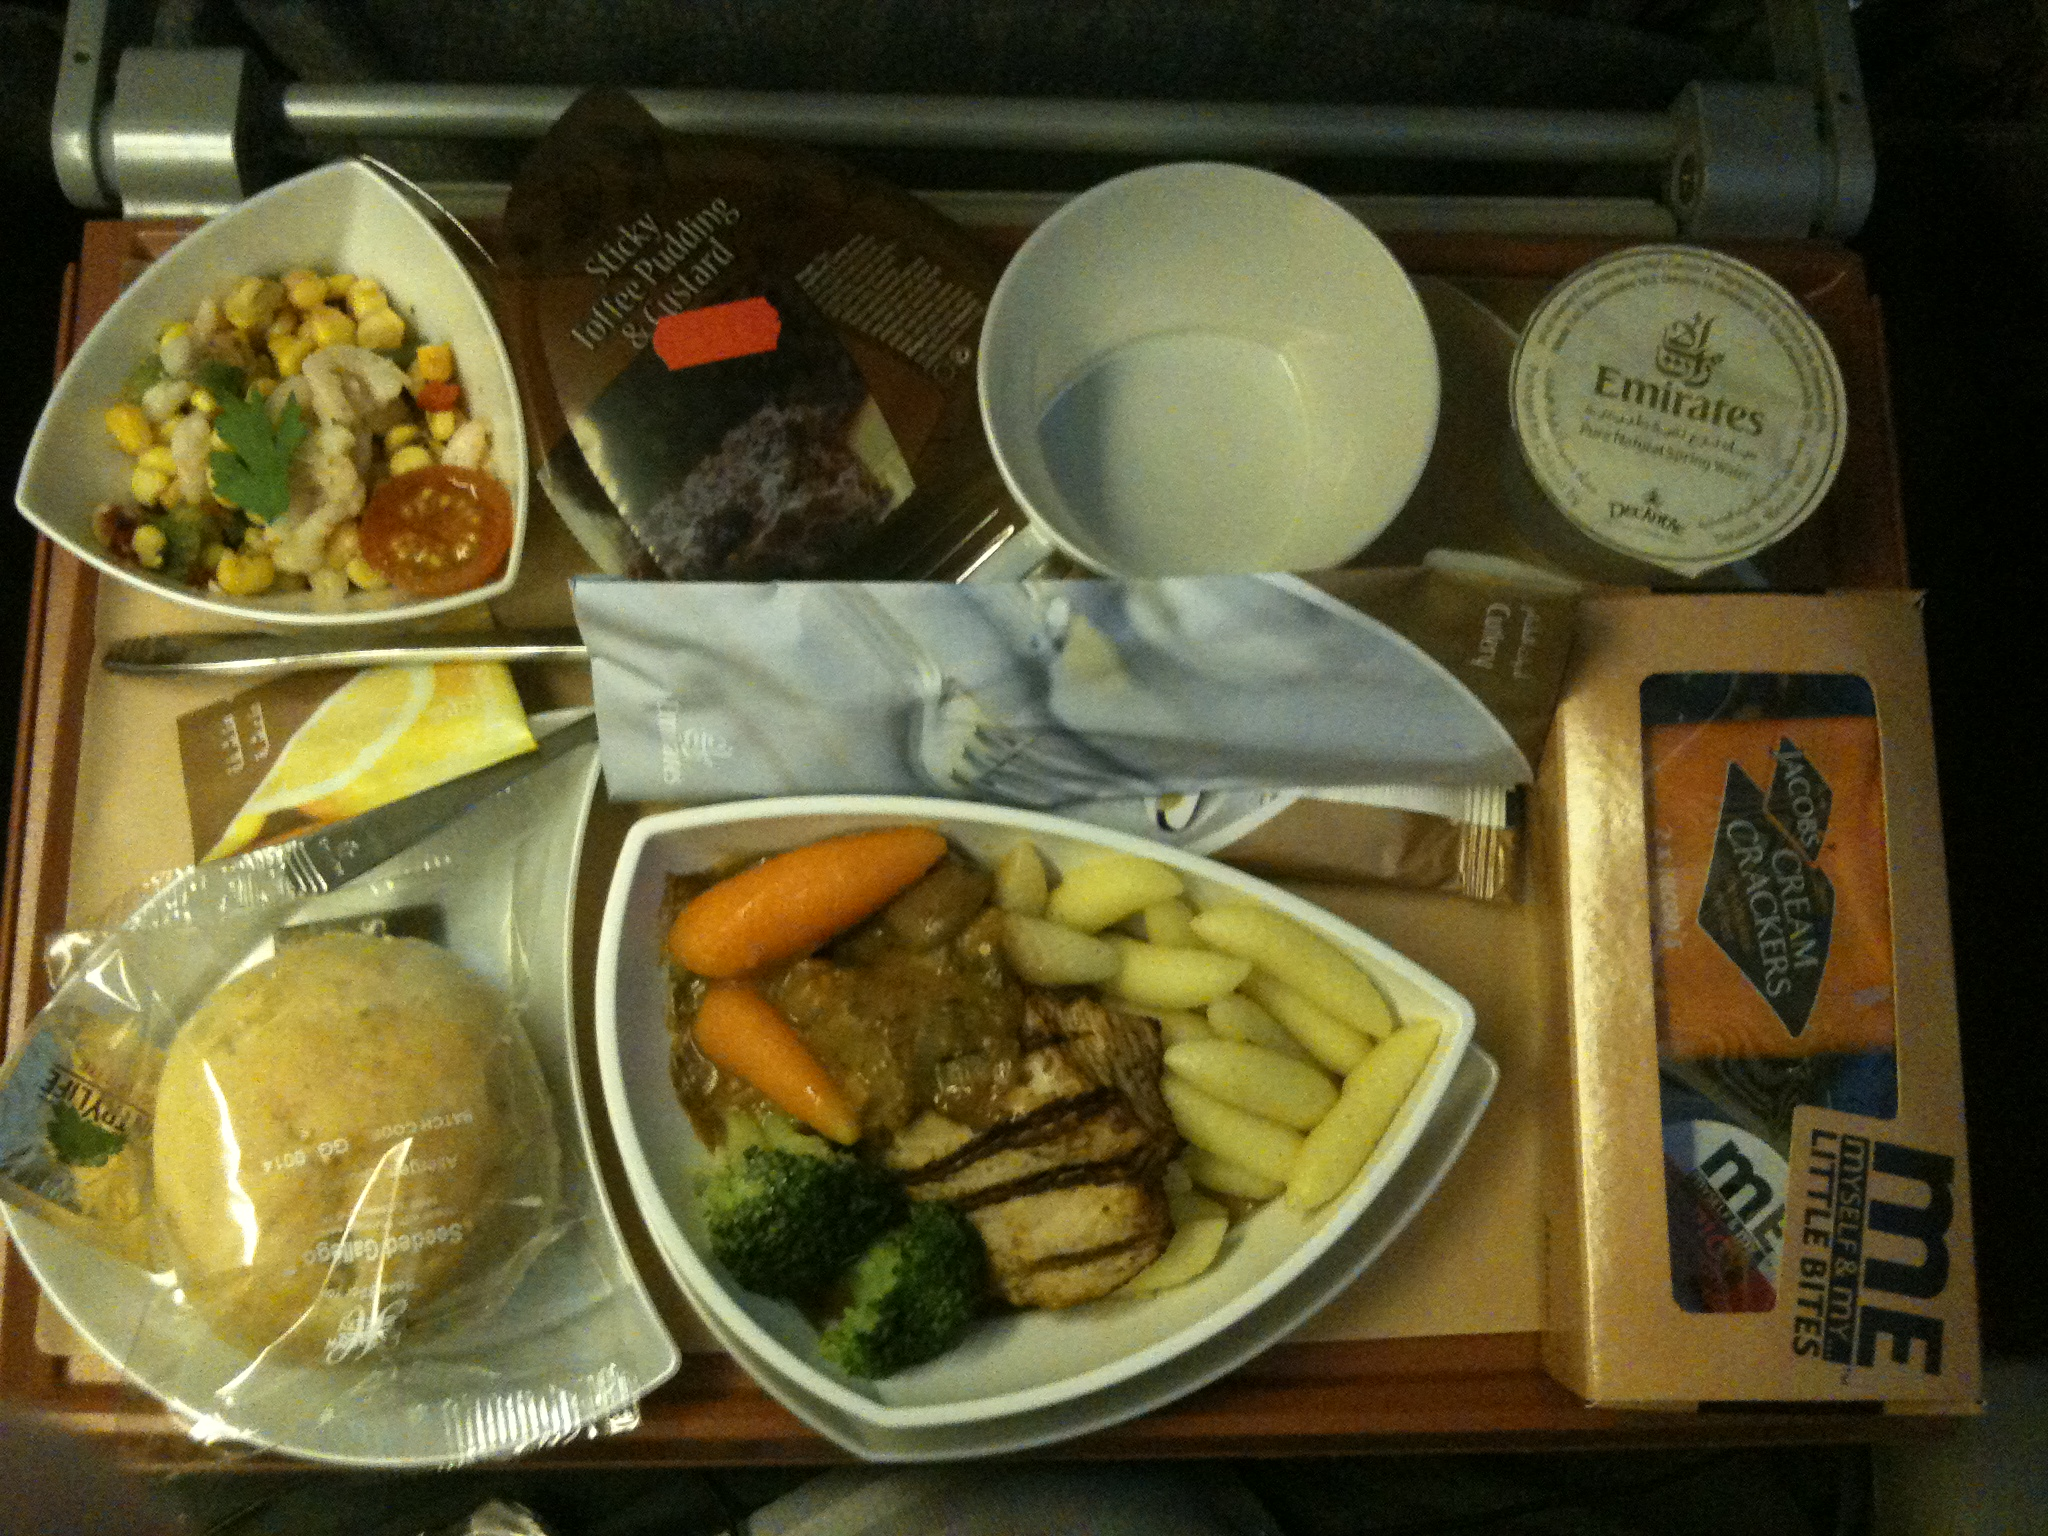 Description Emirates Economy meal 5647277748.jpg